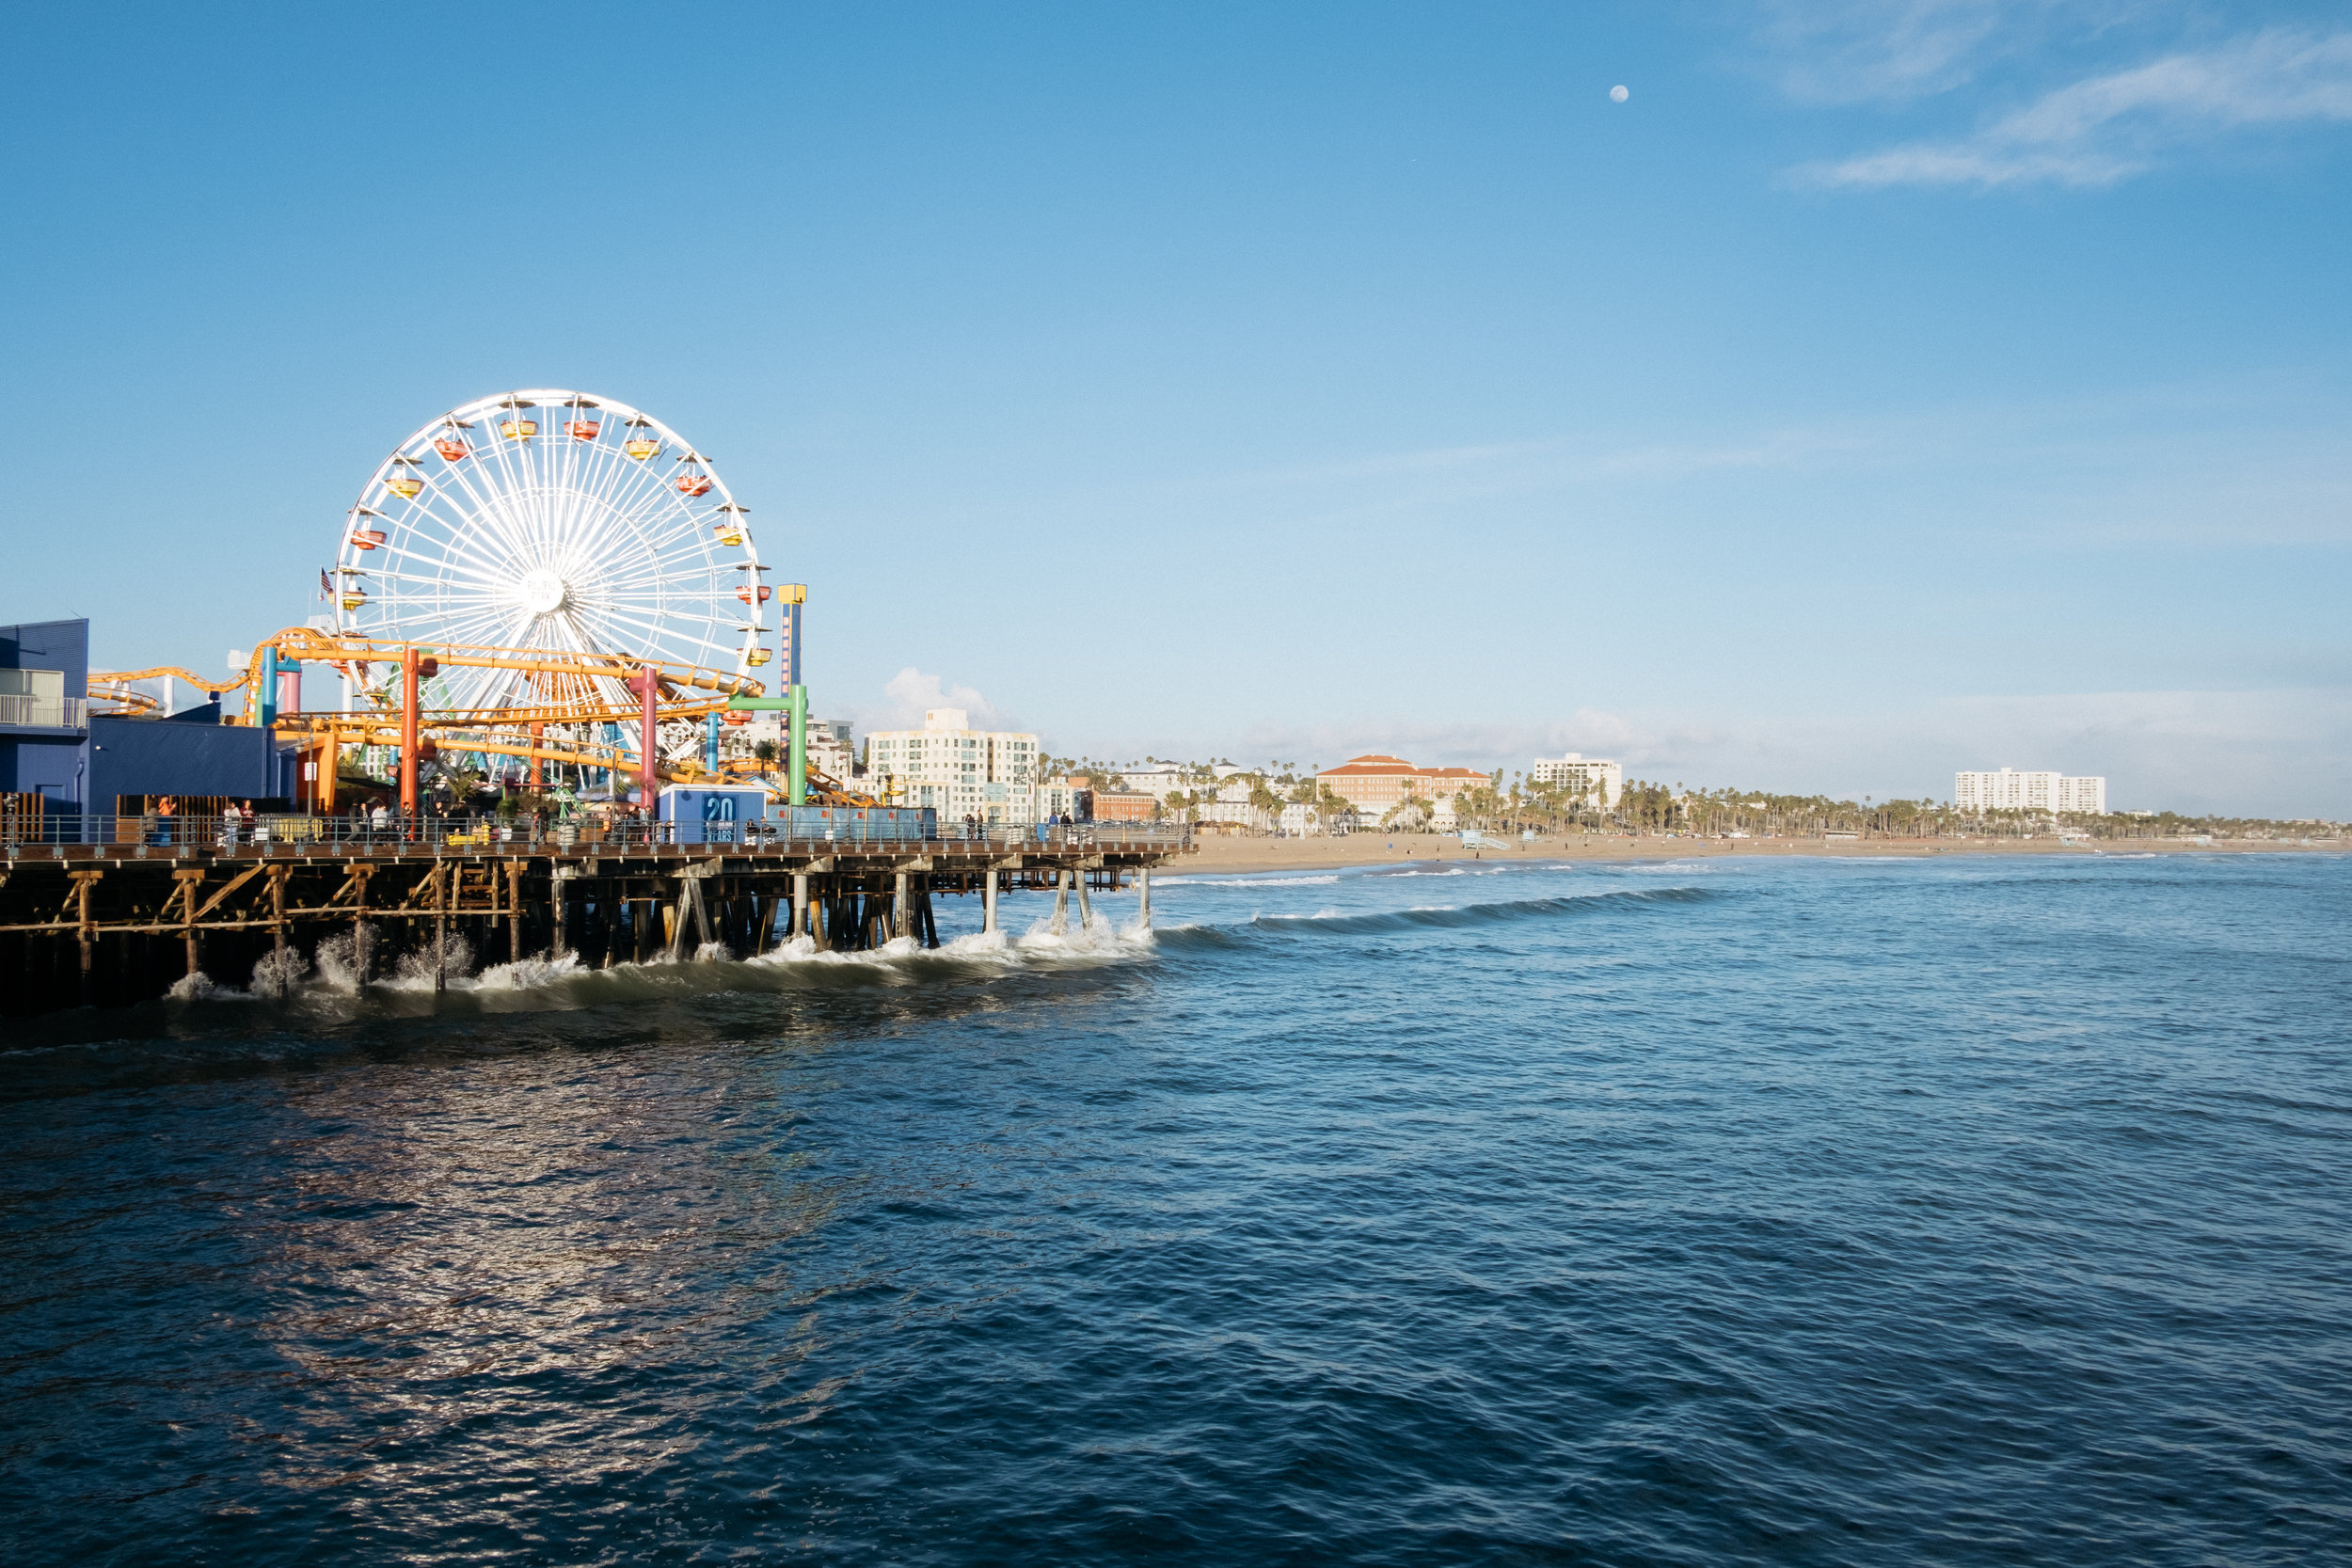 Fairground on Santa Monica pier